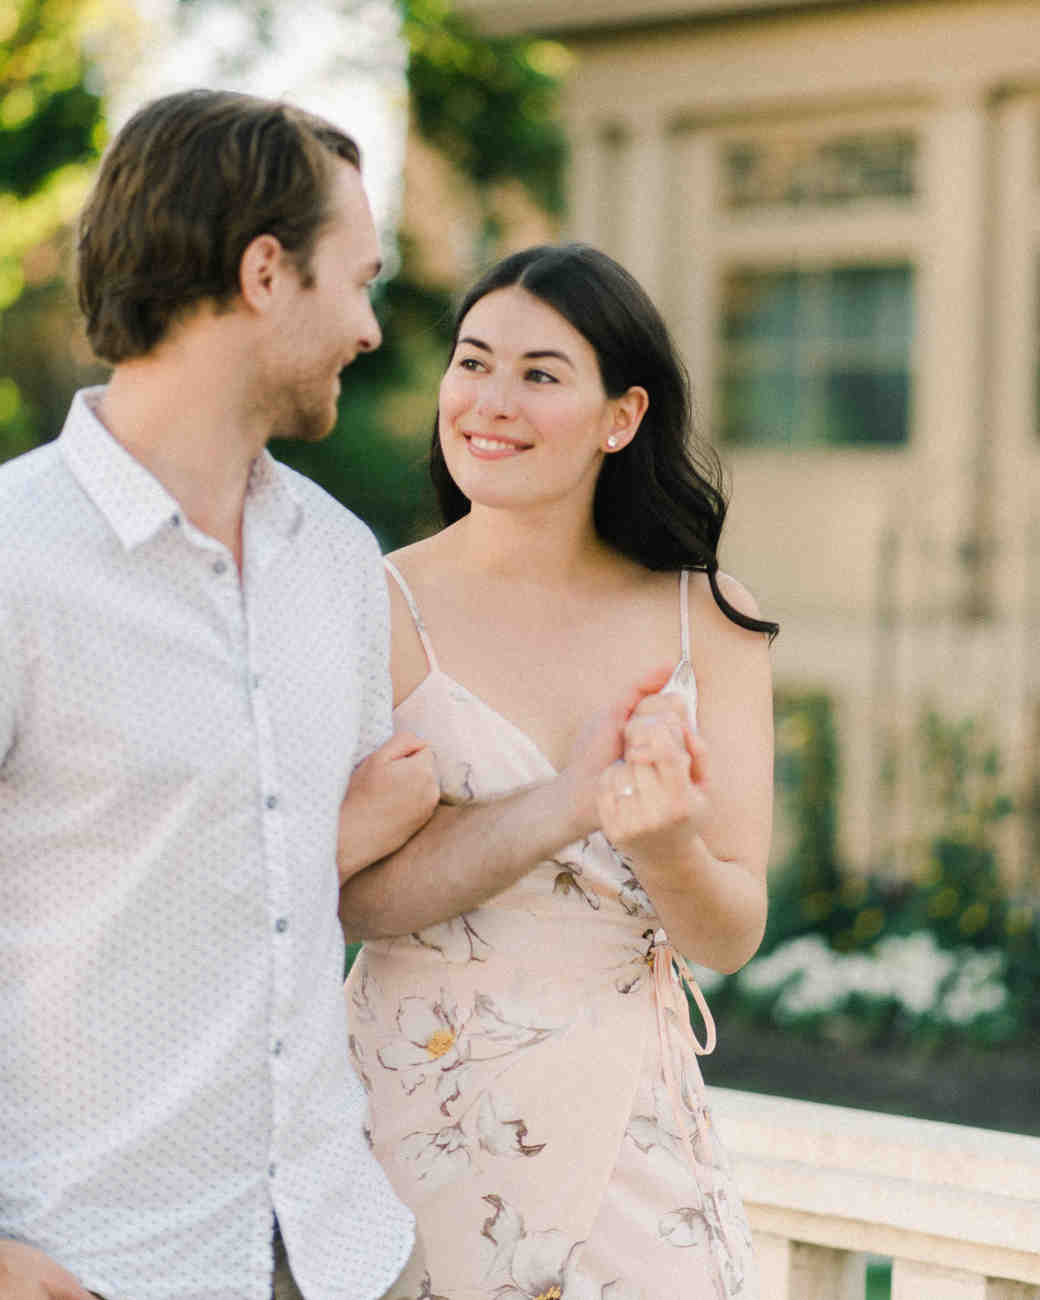 couple holding hands engagement photo